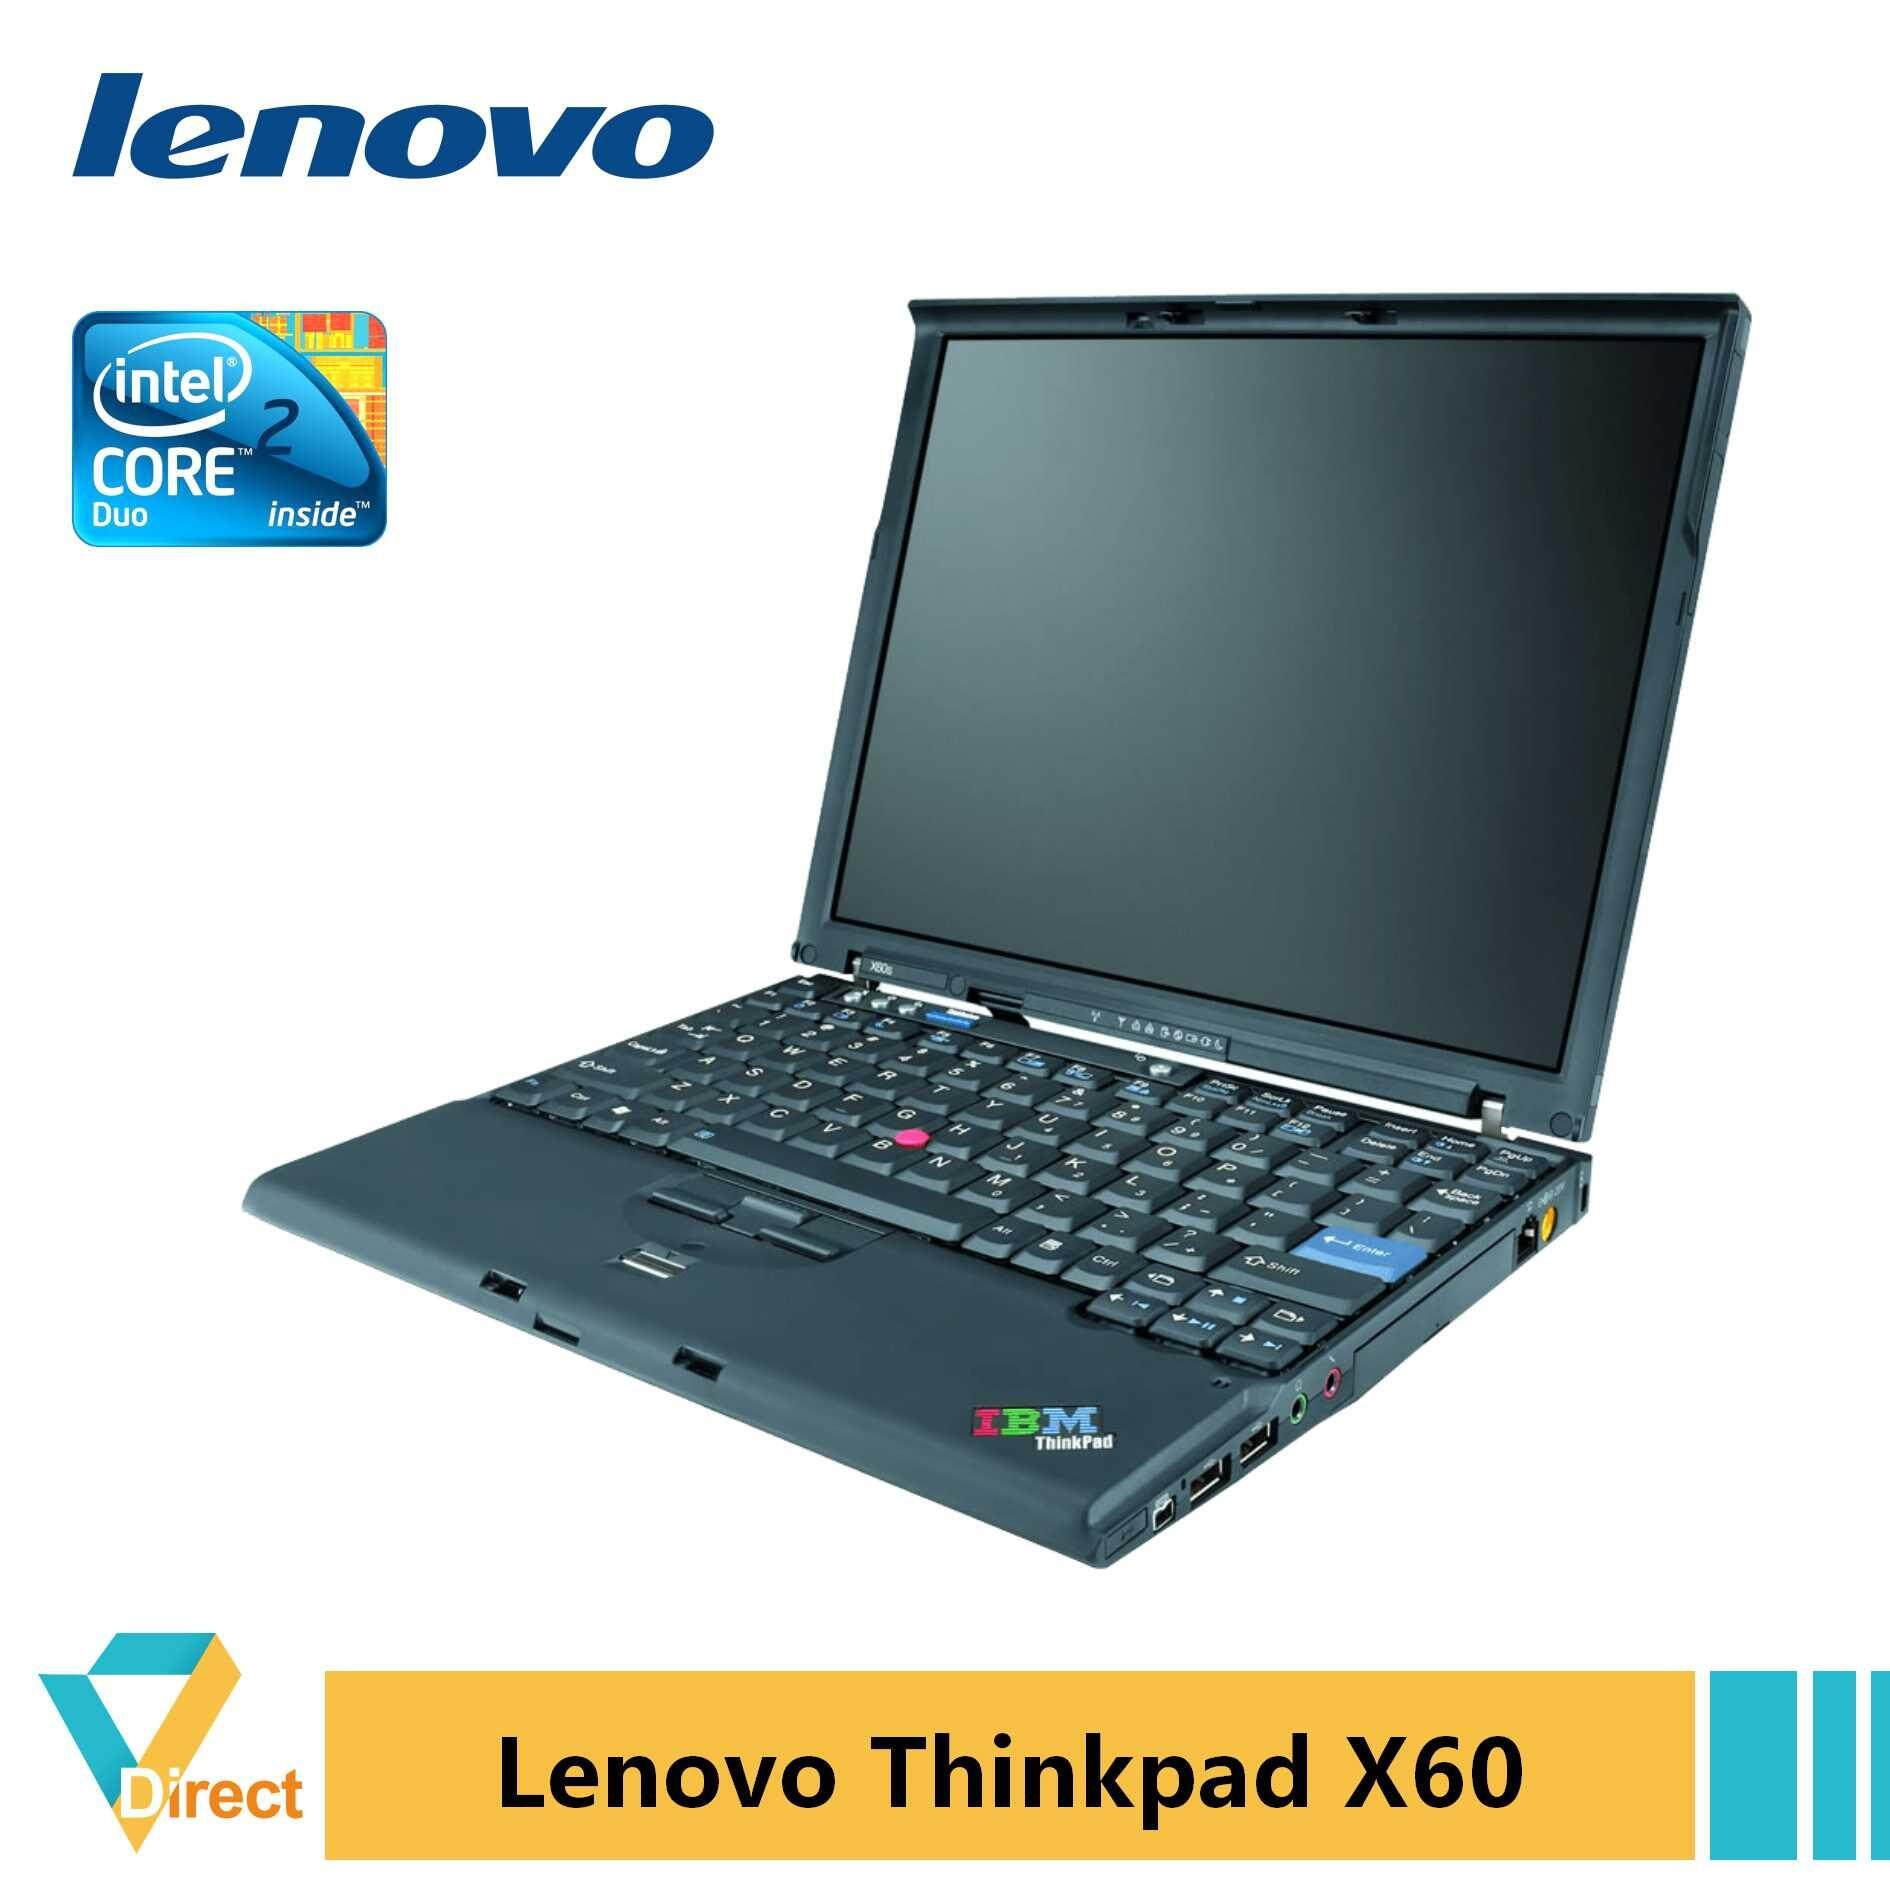 Lenovo Thinkpad X60 laptop PC 4GB RAM 240GB SSD  also 120GB SSD Malaysia